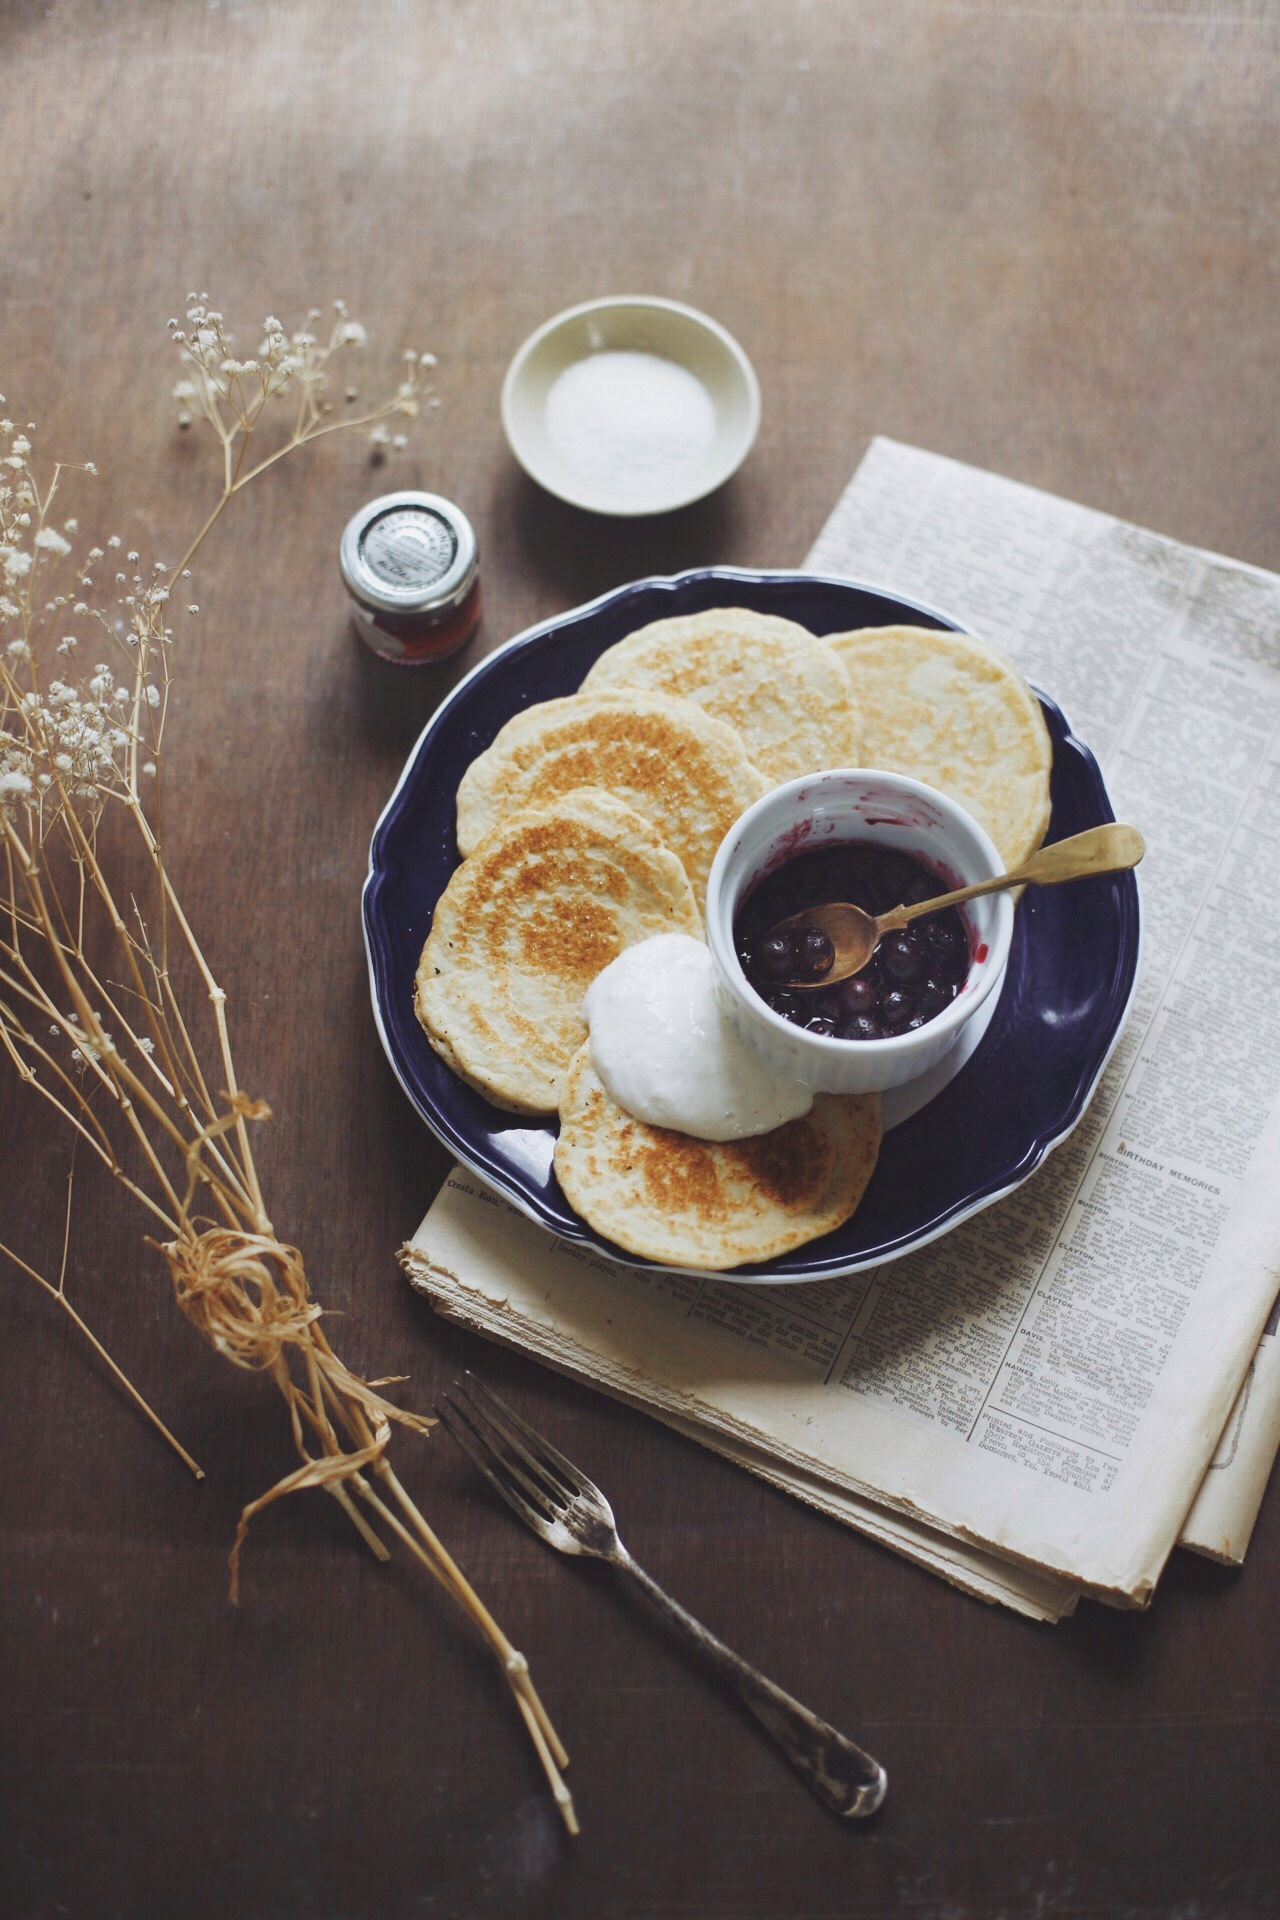 Pancakes free from gluten, sugar and dairy